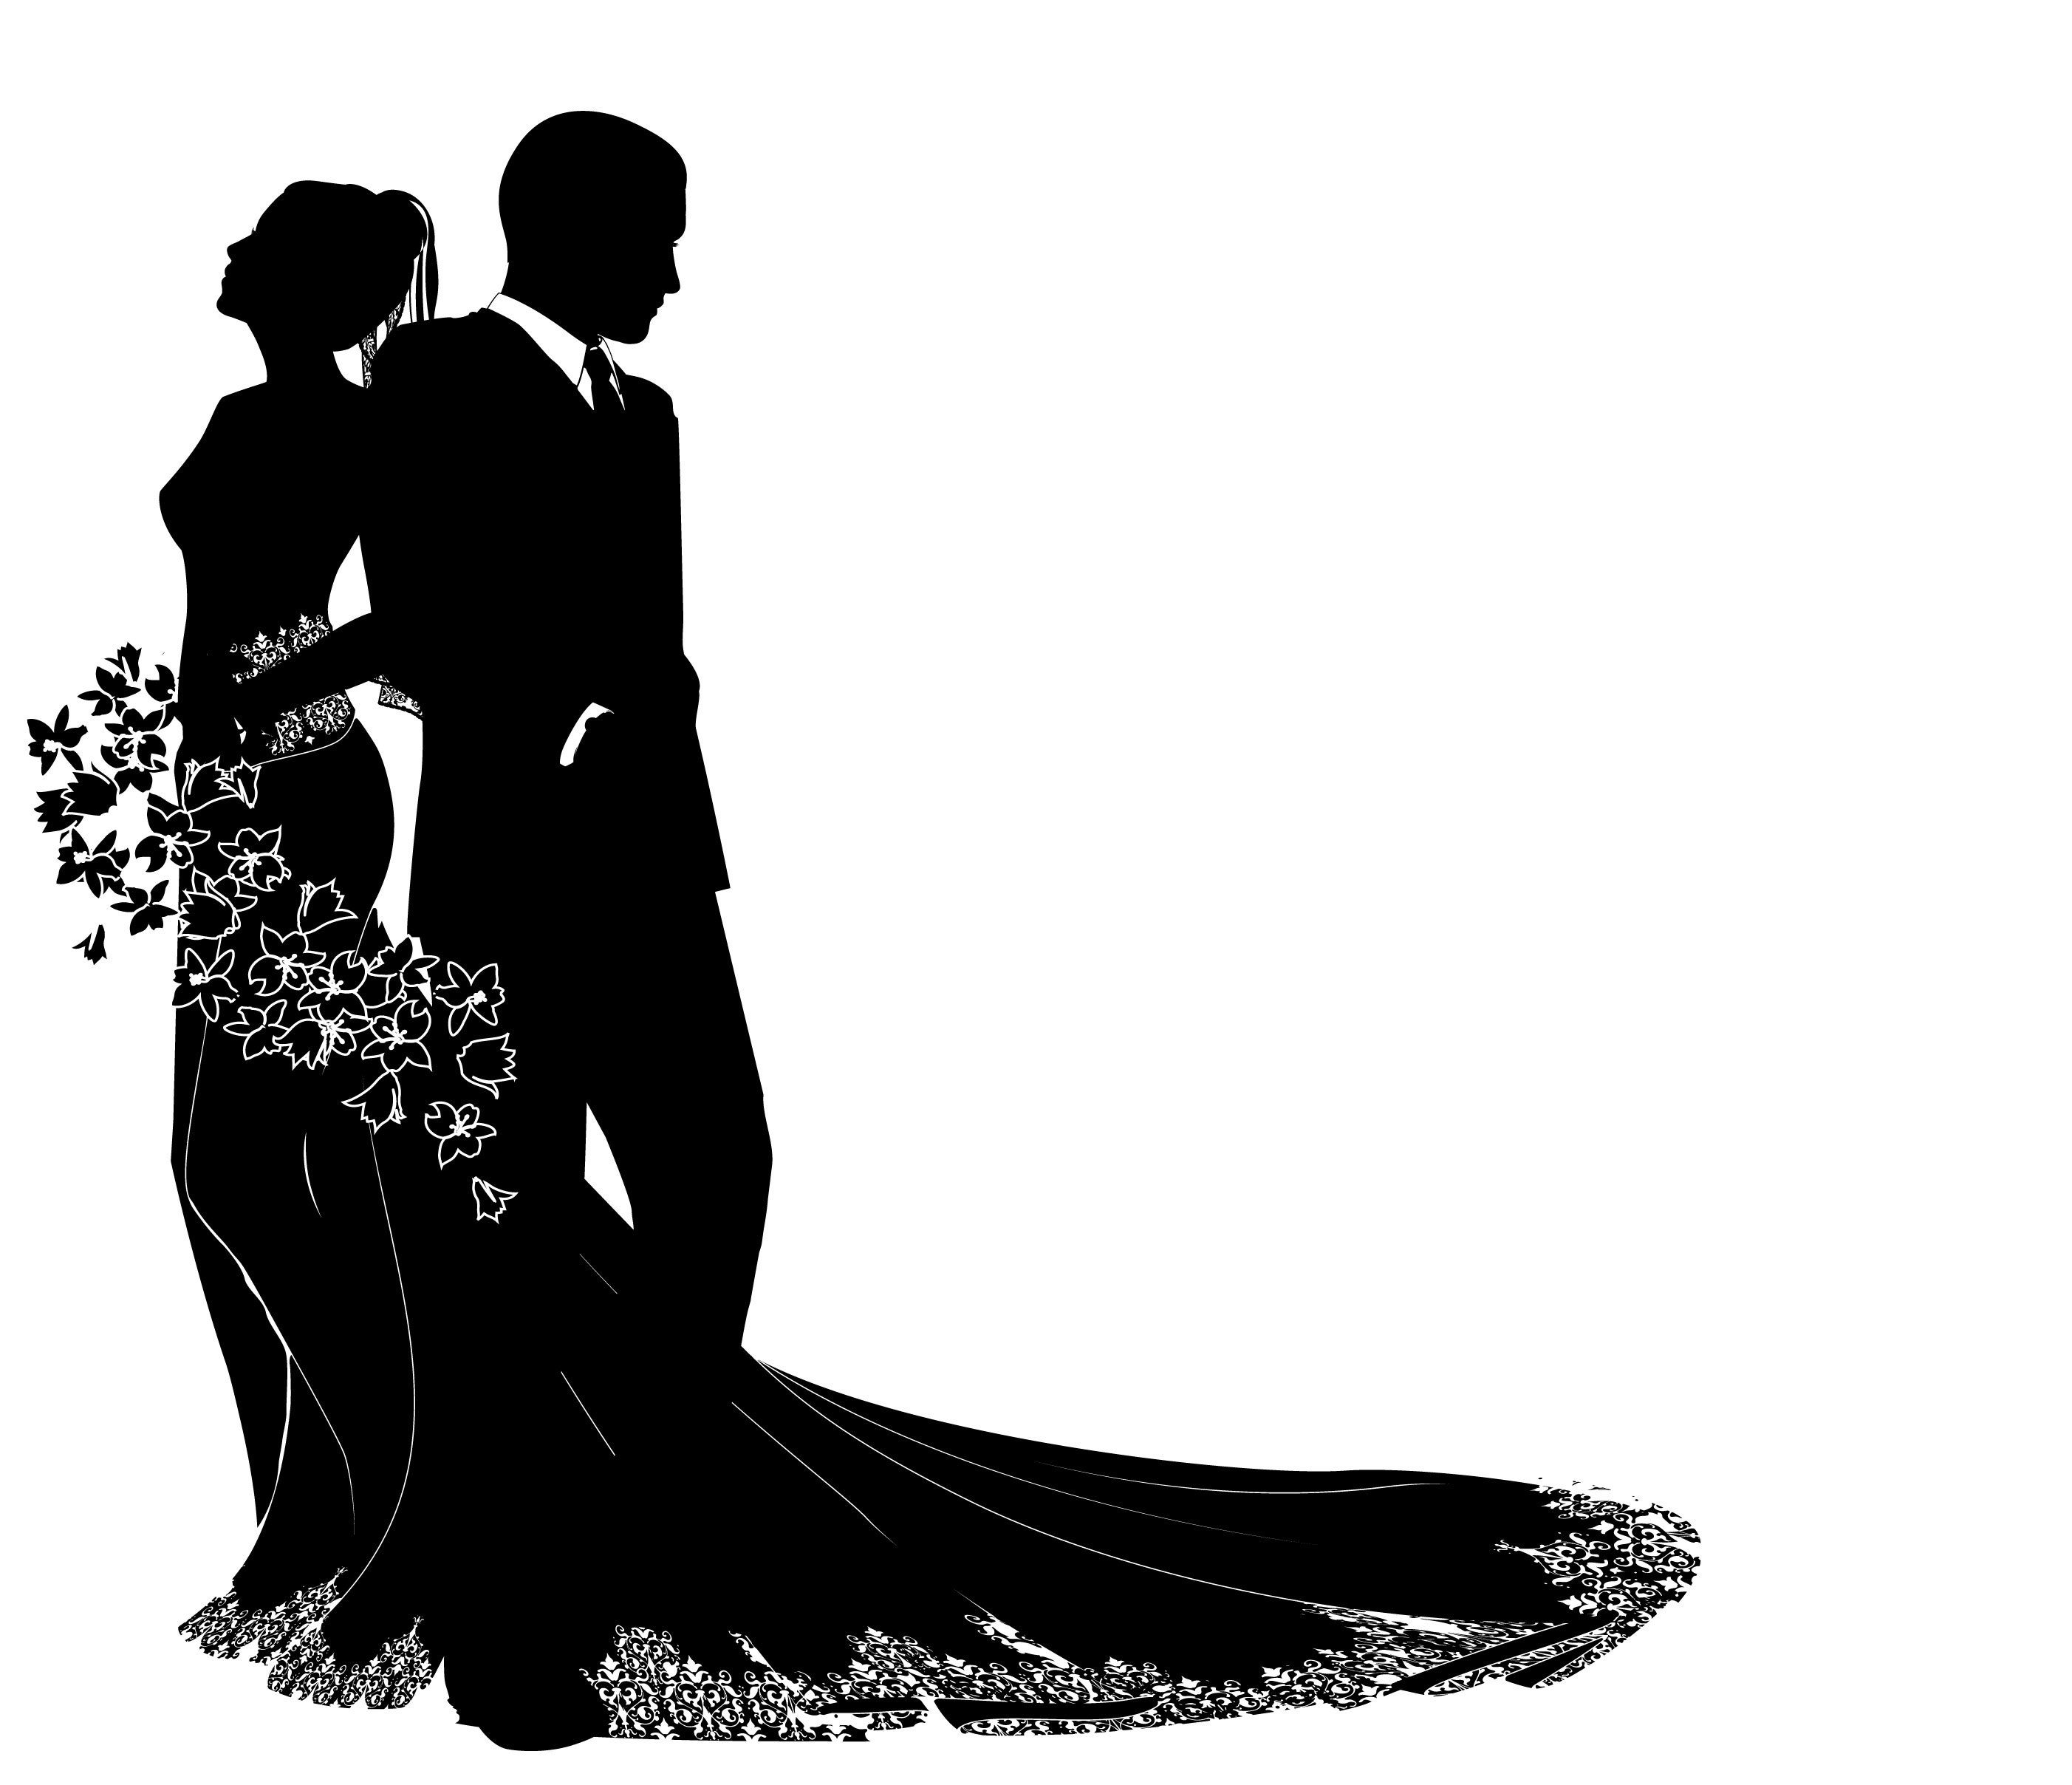 Been asked to design a Wedding Invitation - Graphic Design Forum